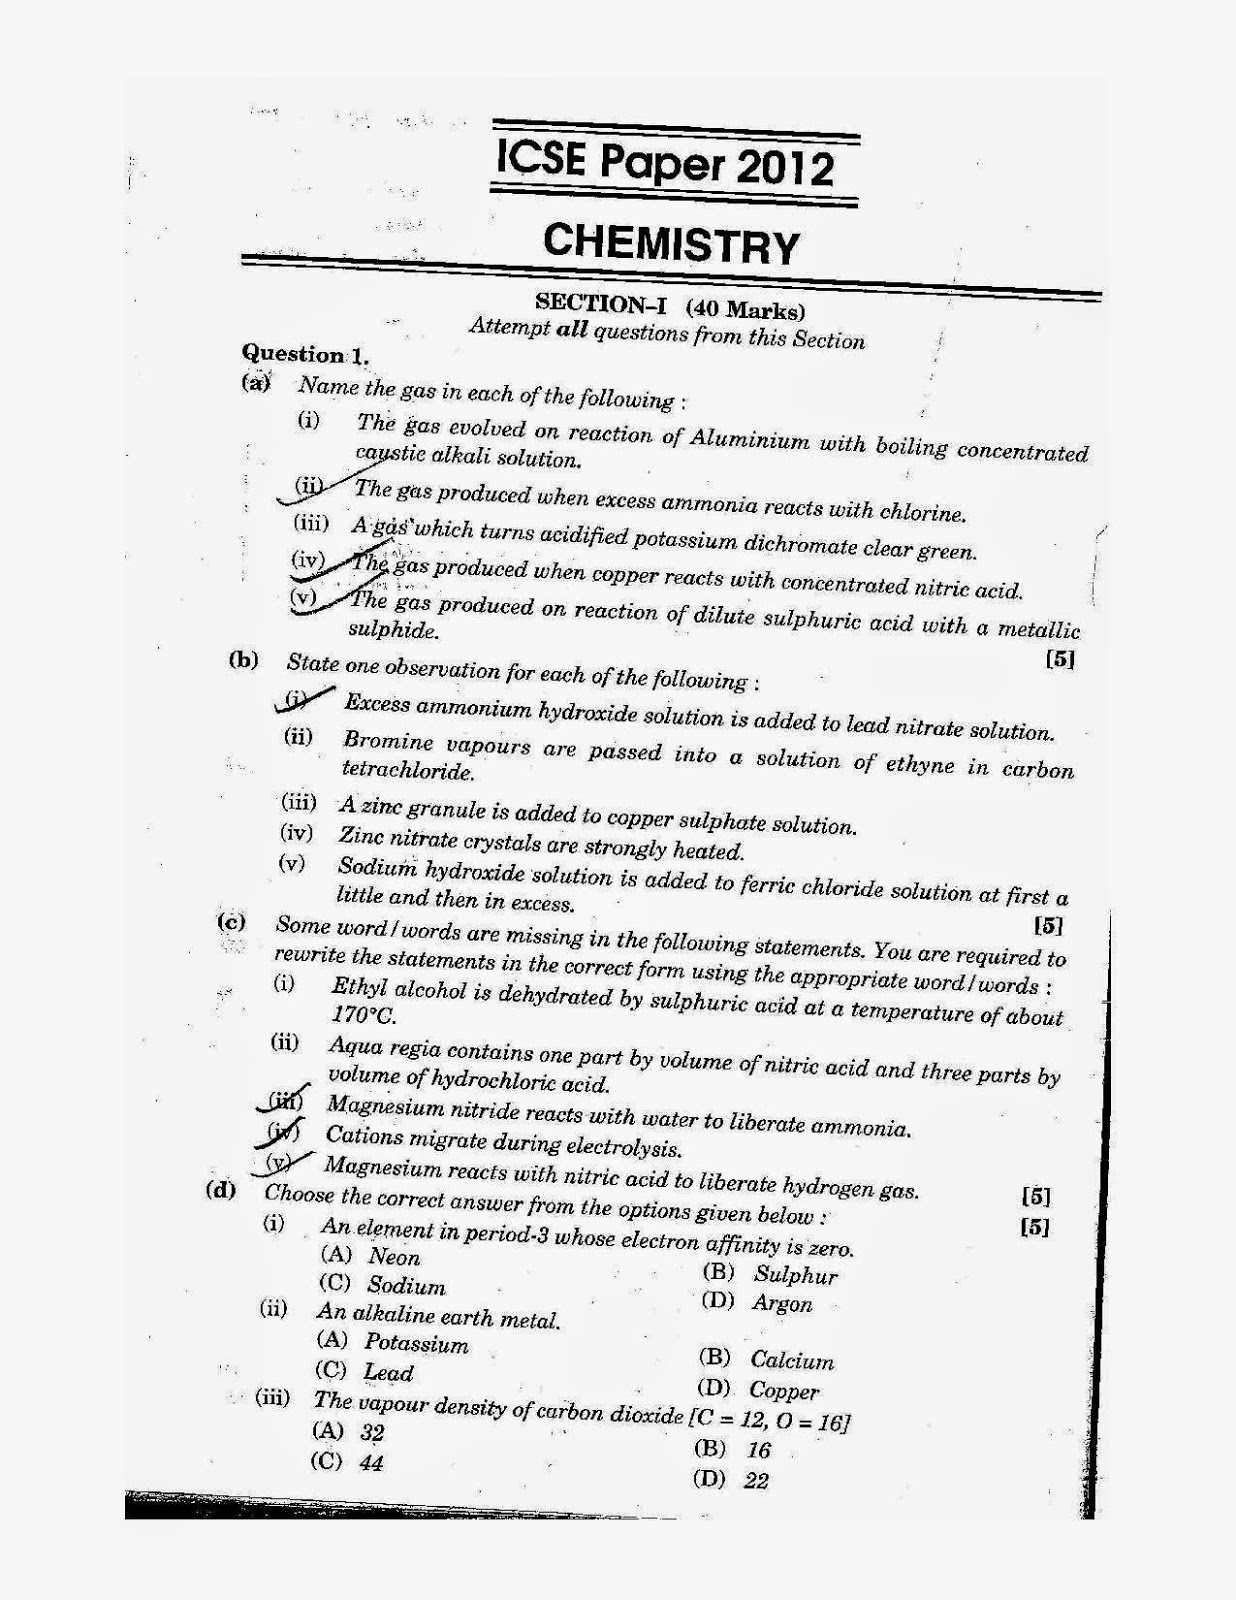 chemistry exam sample paper 2012 2013 2012 hsc chemistry 'sample answers' when examination committees develop questions for the examination, they may write 'sample answers' or, in the case of some questions, 'answers could include.